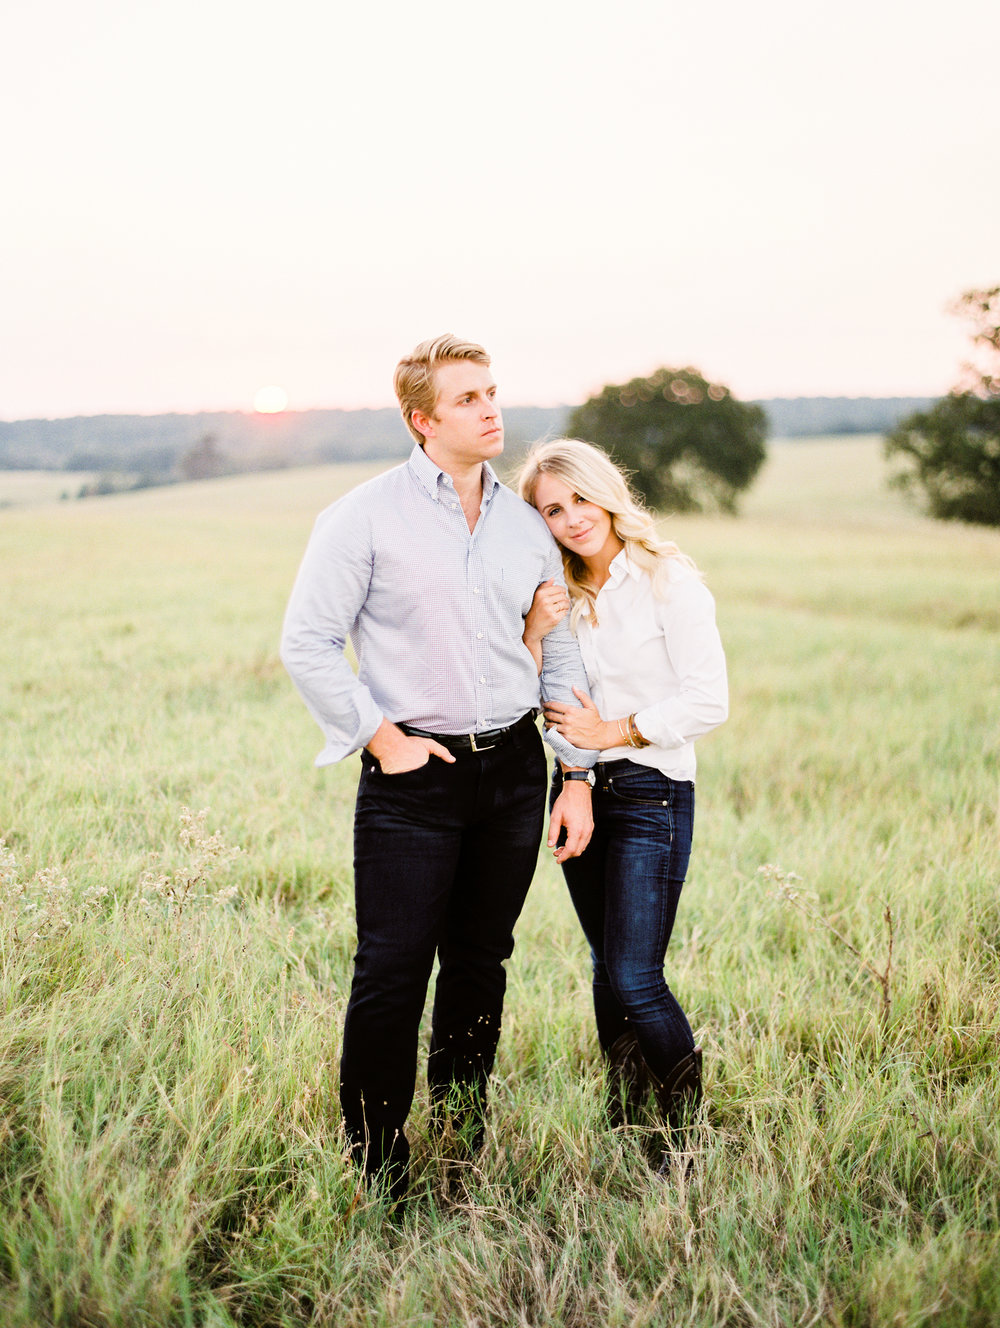 Lauren+John+Engaged+TX-102.jpg